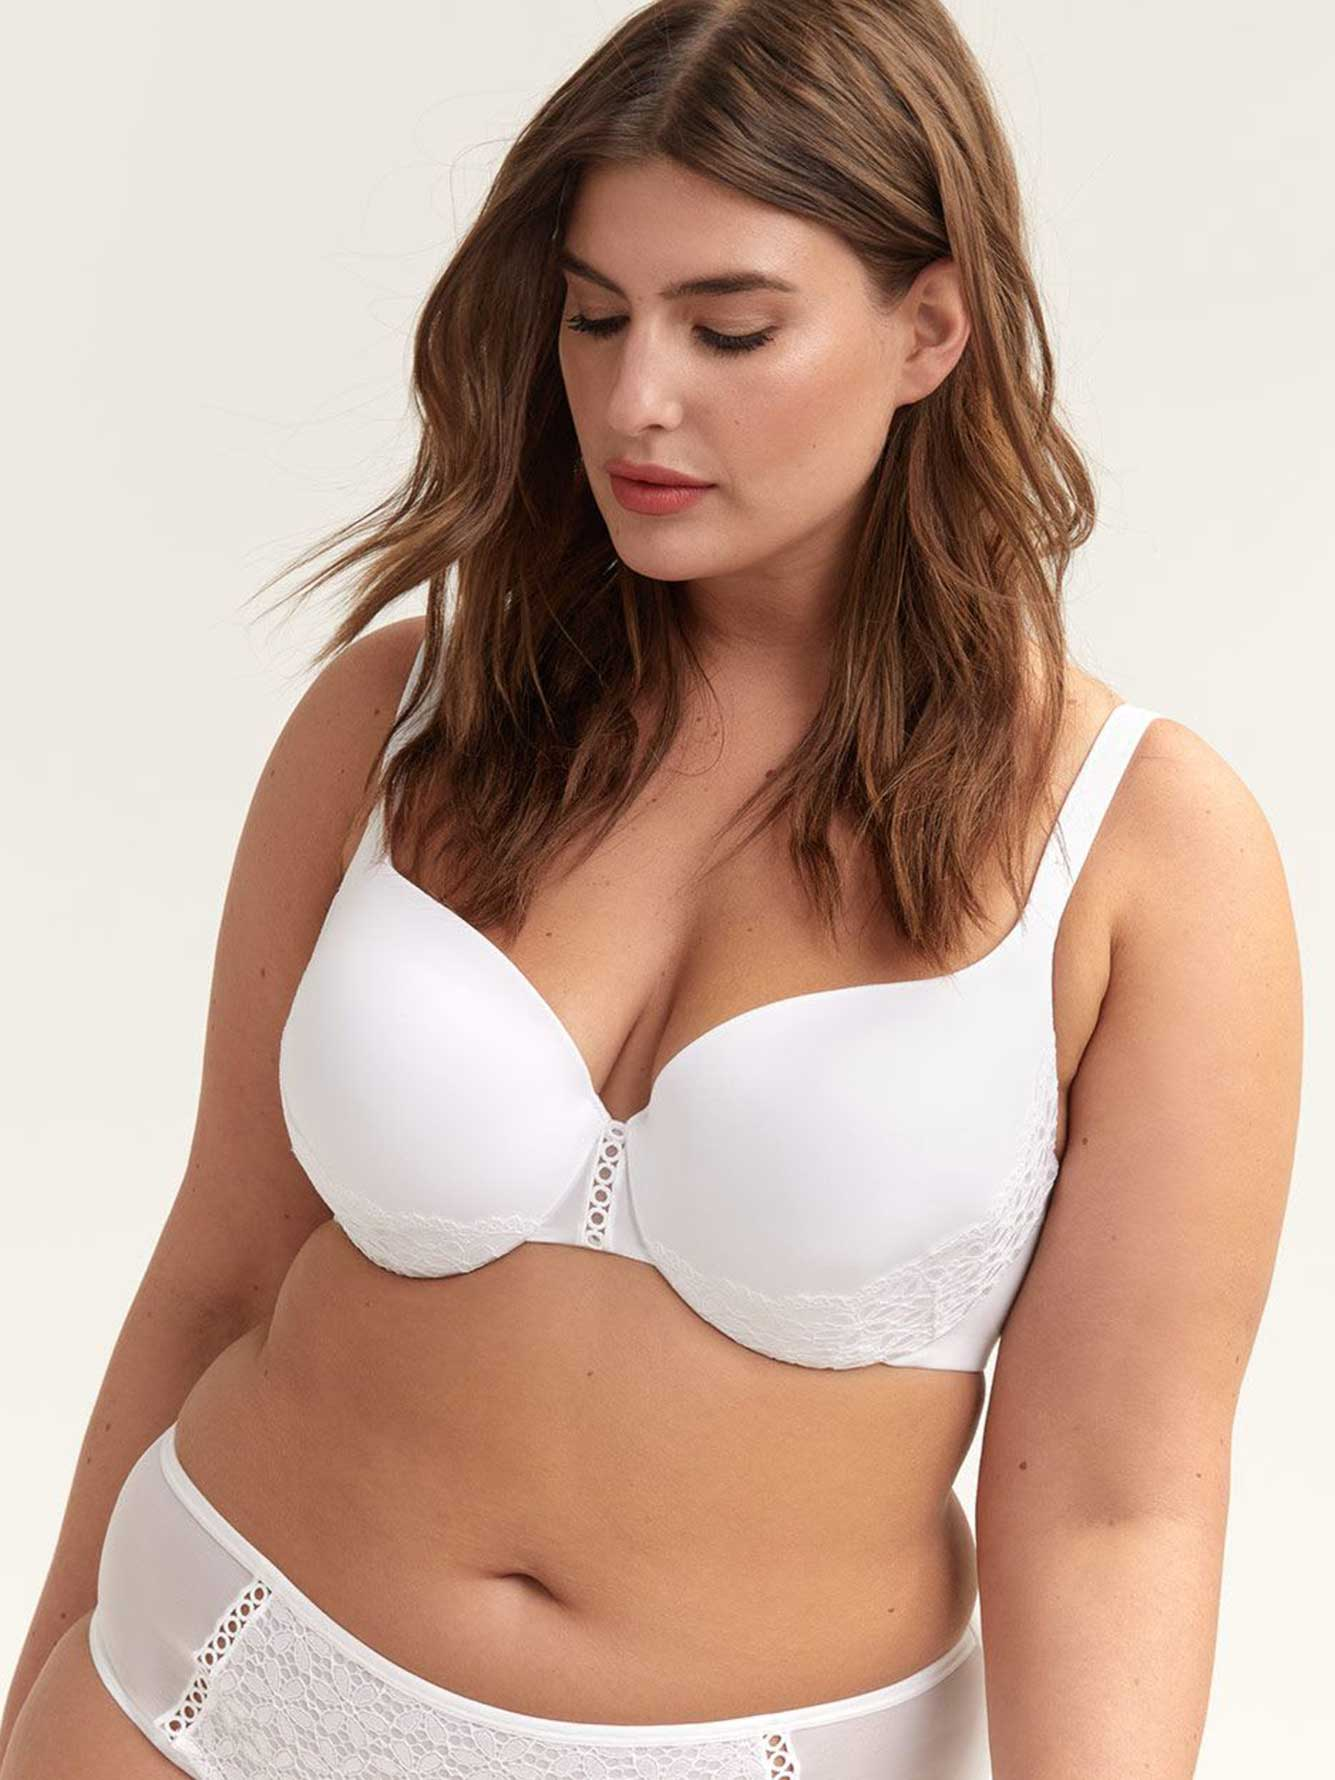 Soutien-gorge en microfibre fine et texturé - Ashley Graham